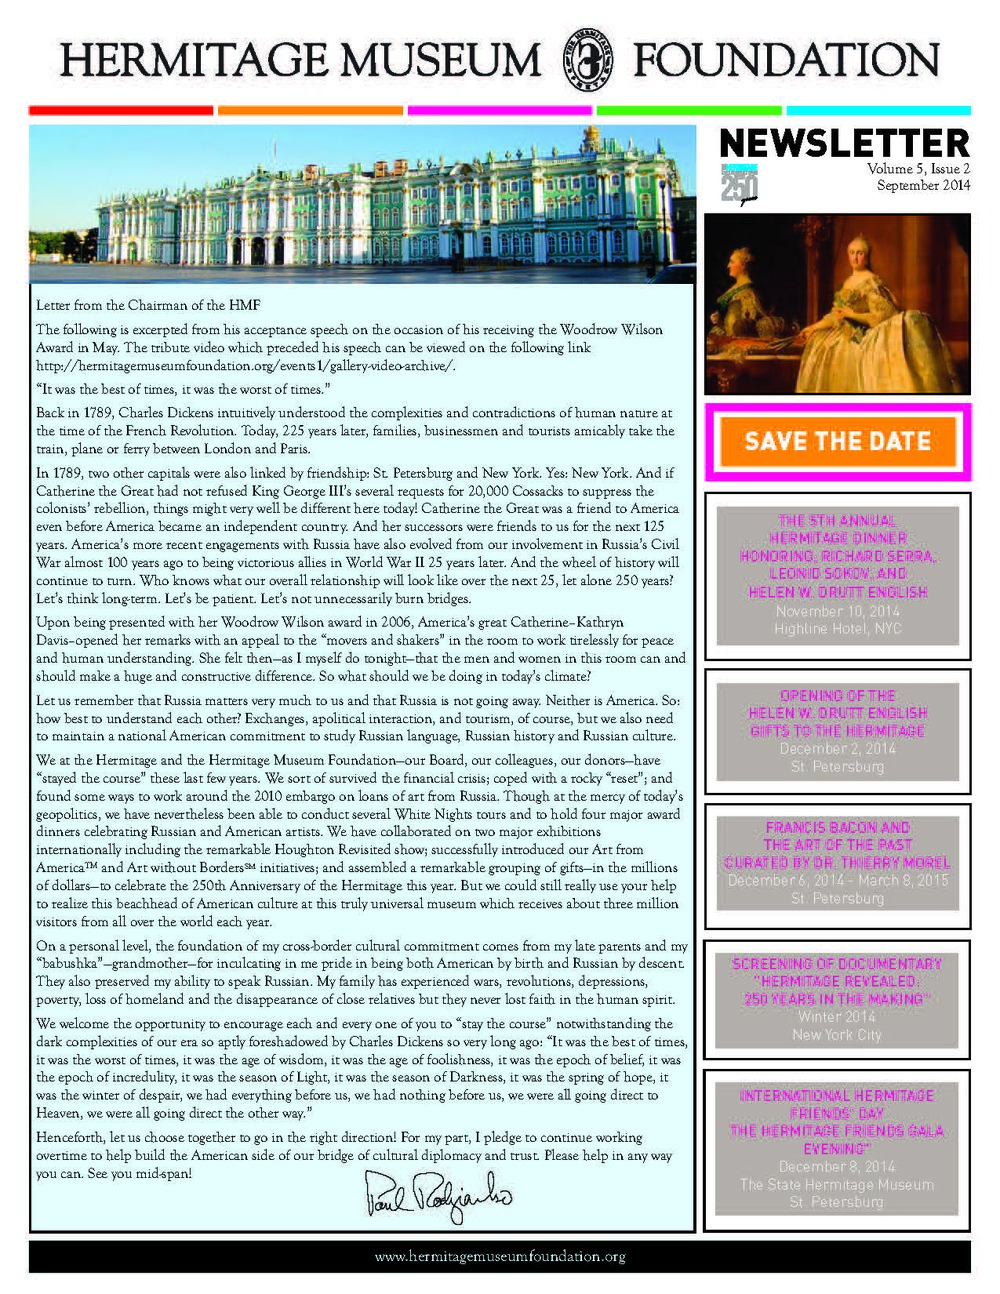 Hermitage_Museum_Foundation_Newsletter_FINAL_Sept._2014_Page_1.jpg